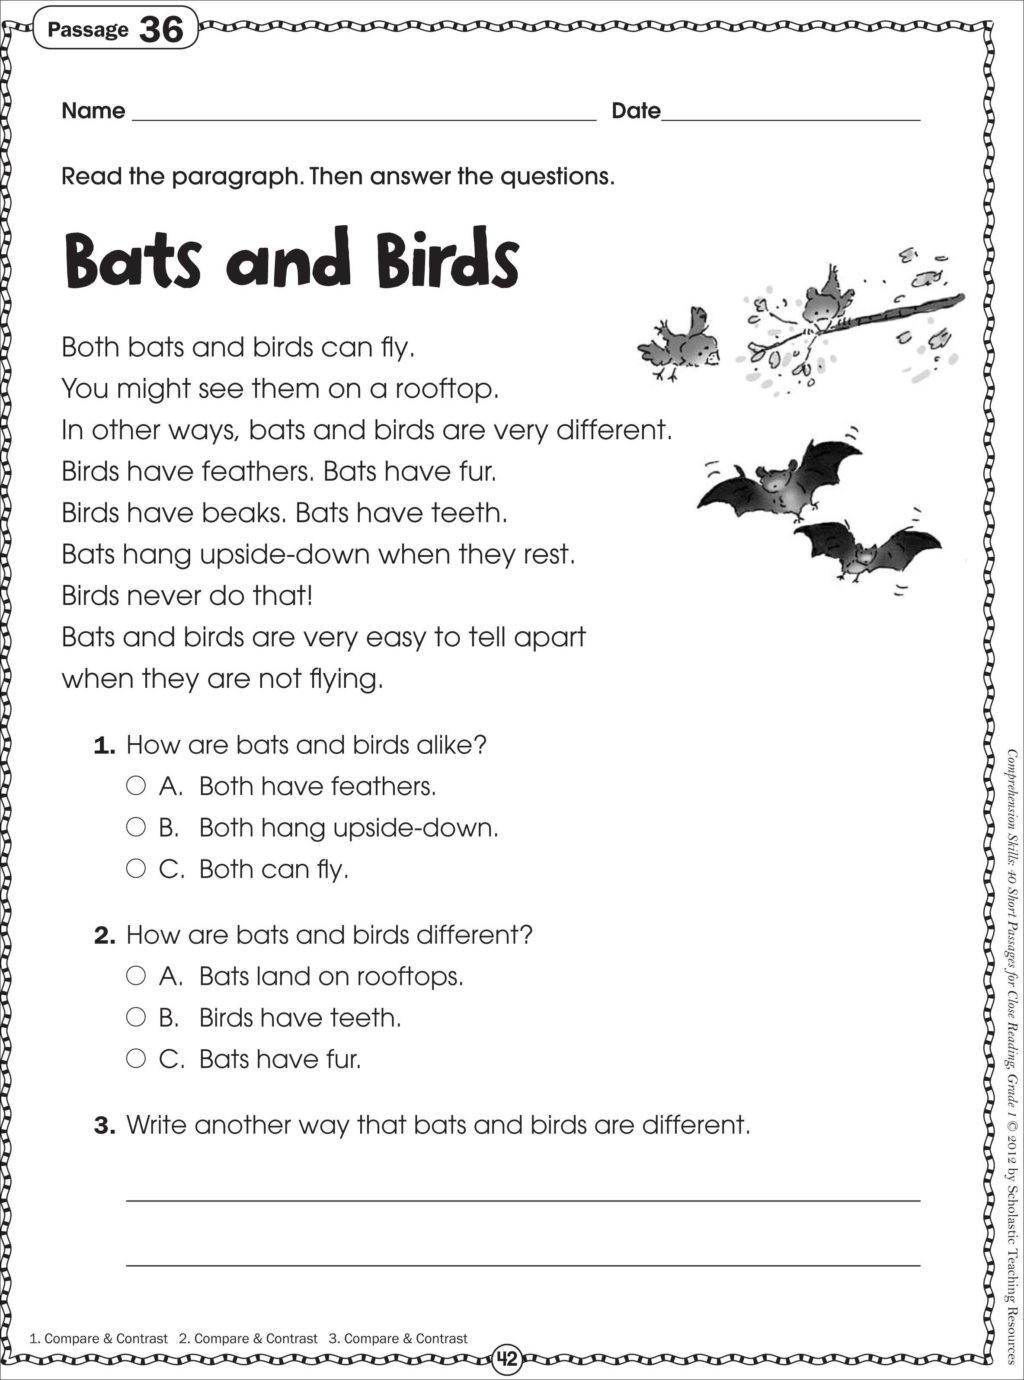 Timeline Worksheets for 1st Grade Worksheet Reading Worskheets Kindergarten Worksheets